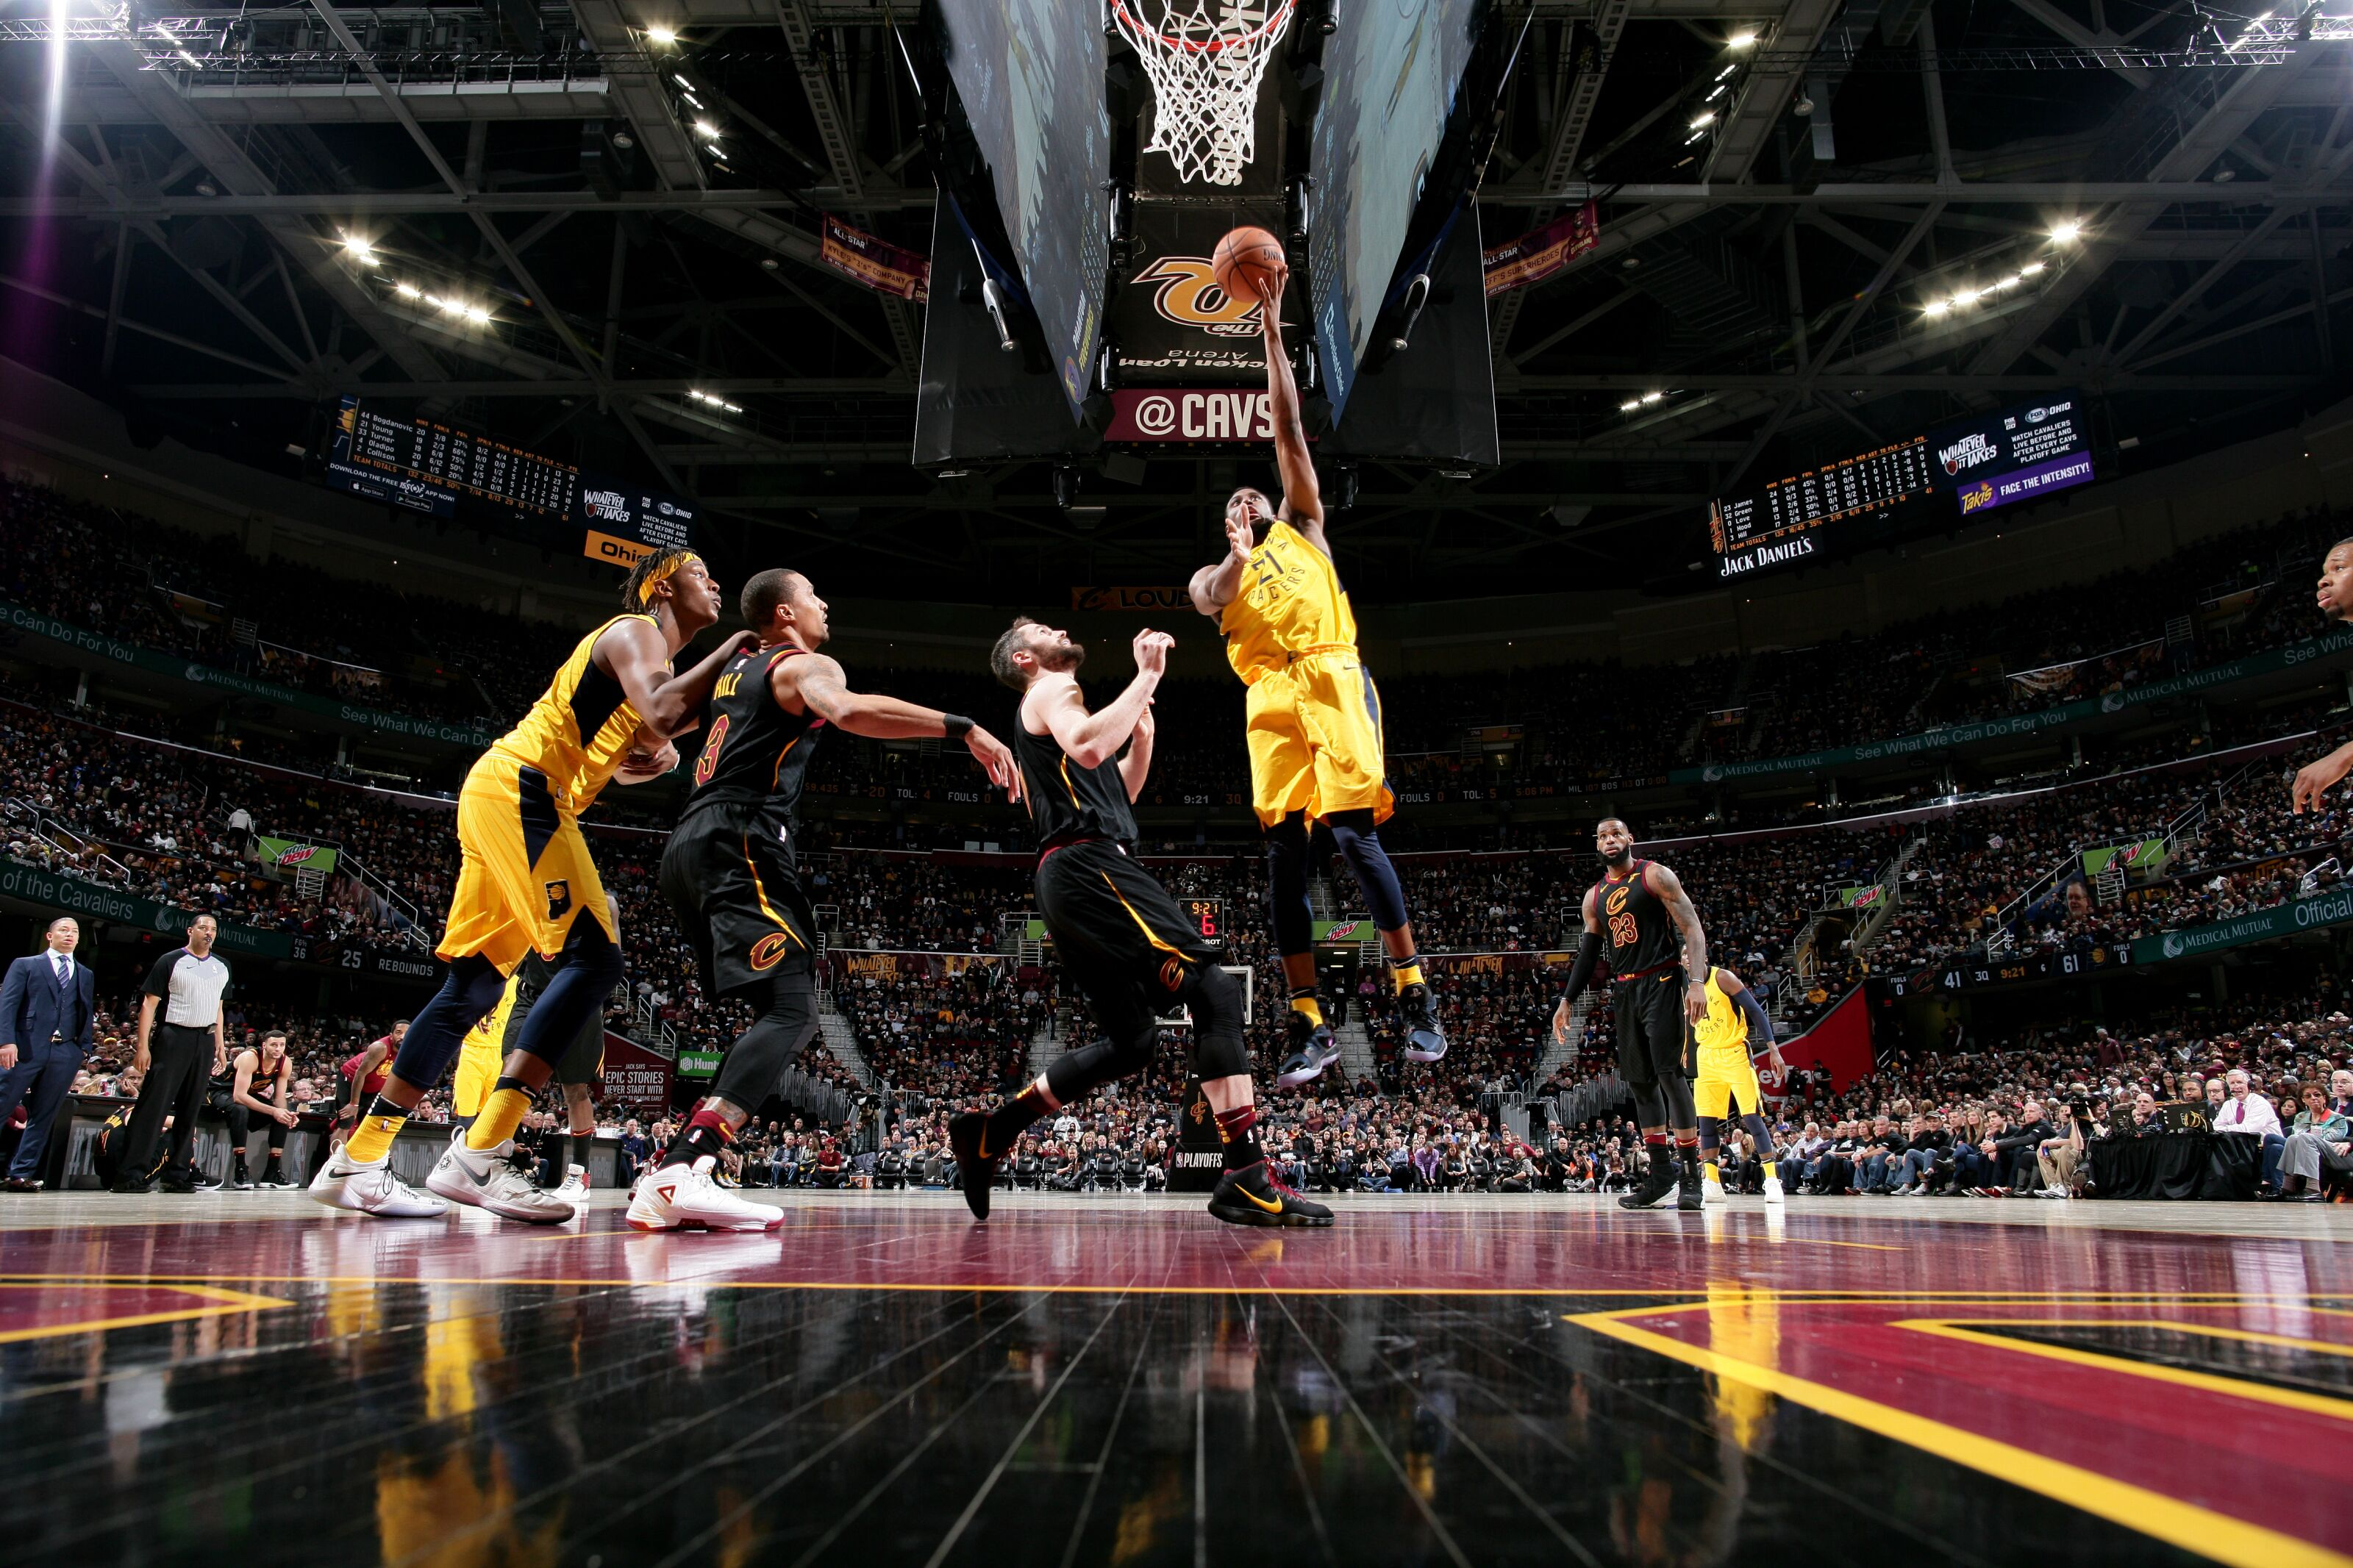 946673142-indiana-pacers-v-cleveland-cavaliers-game-one.jpg